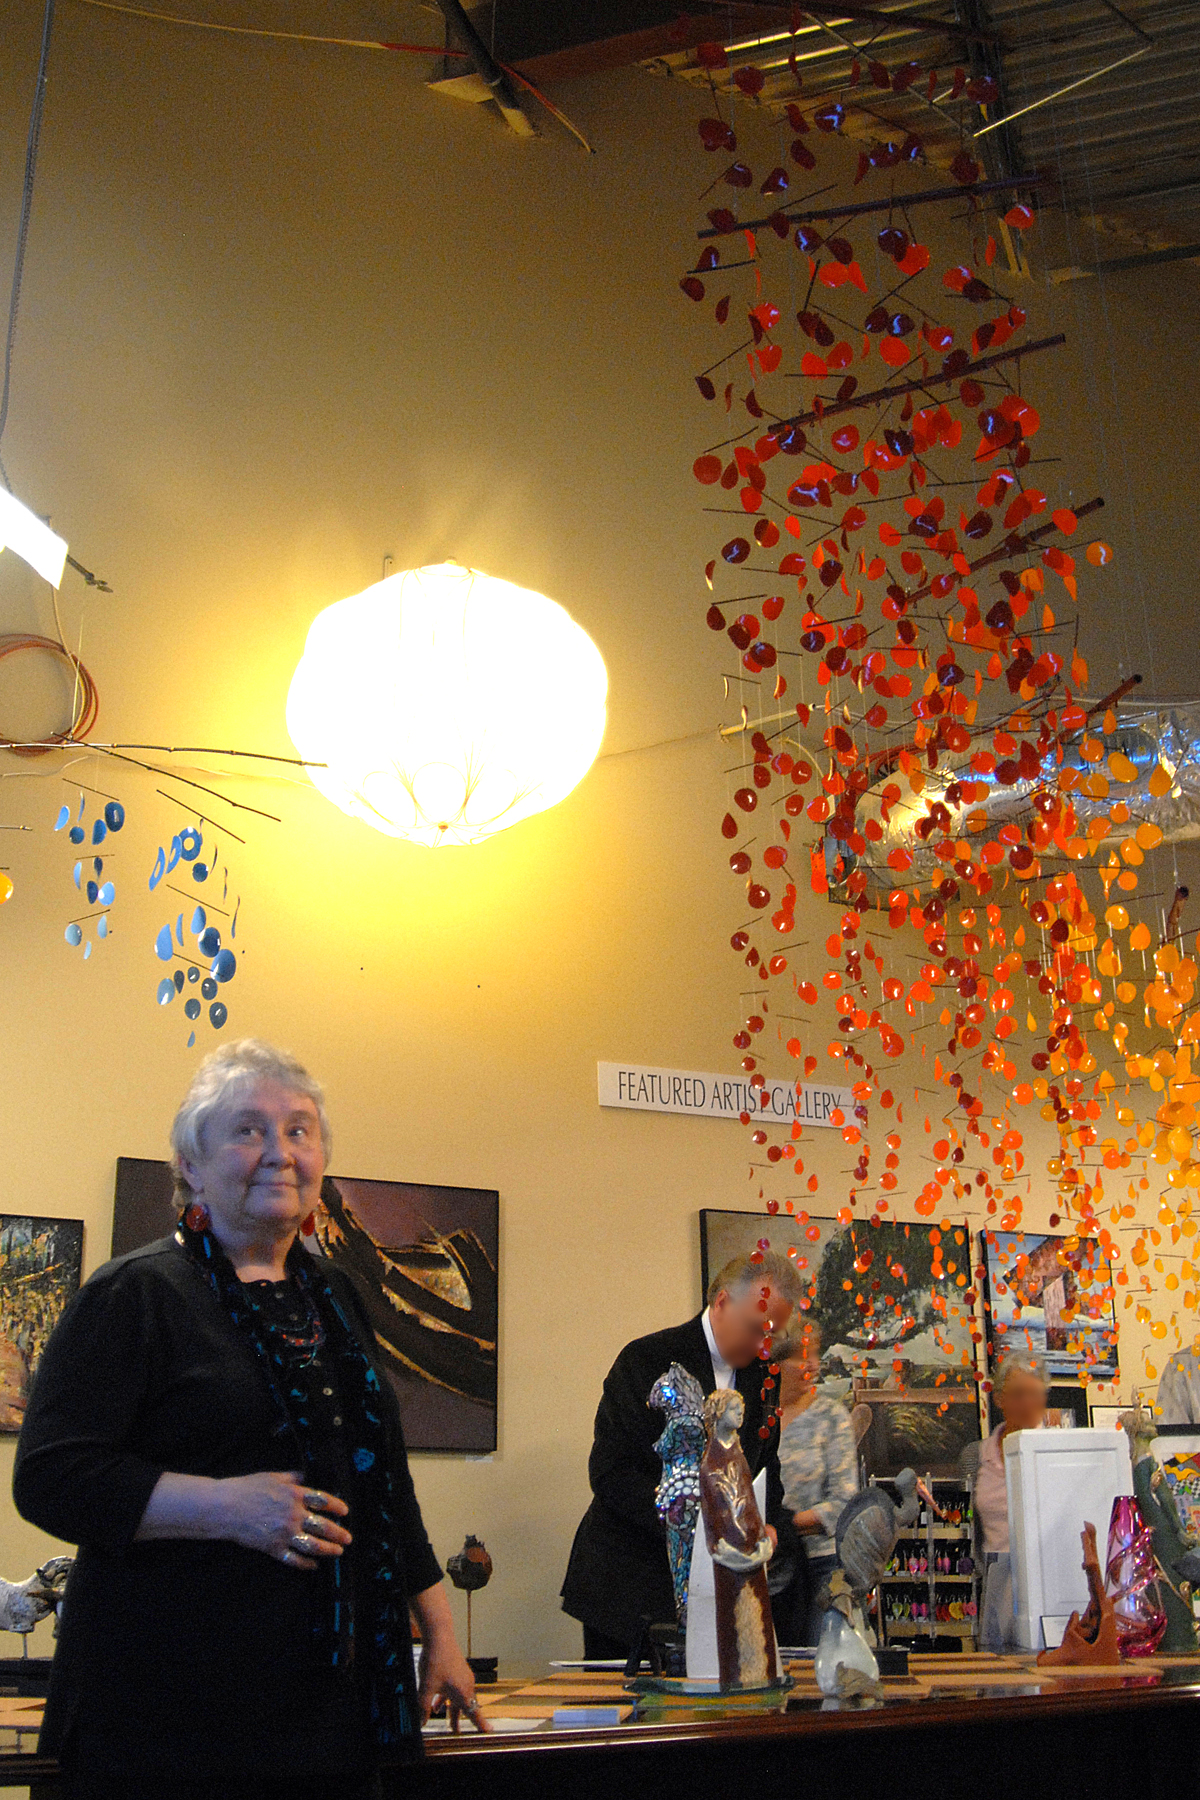 """Candyce with """"Steps of Recovery"""" at the Geezer Gallery"""